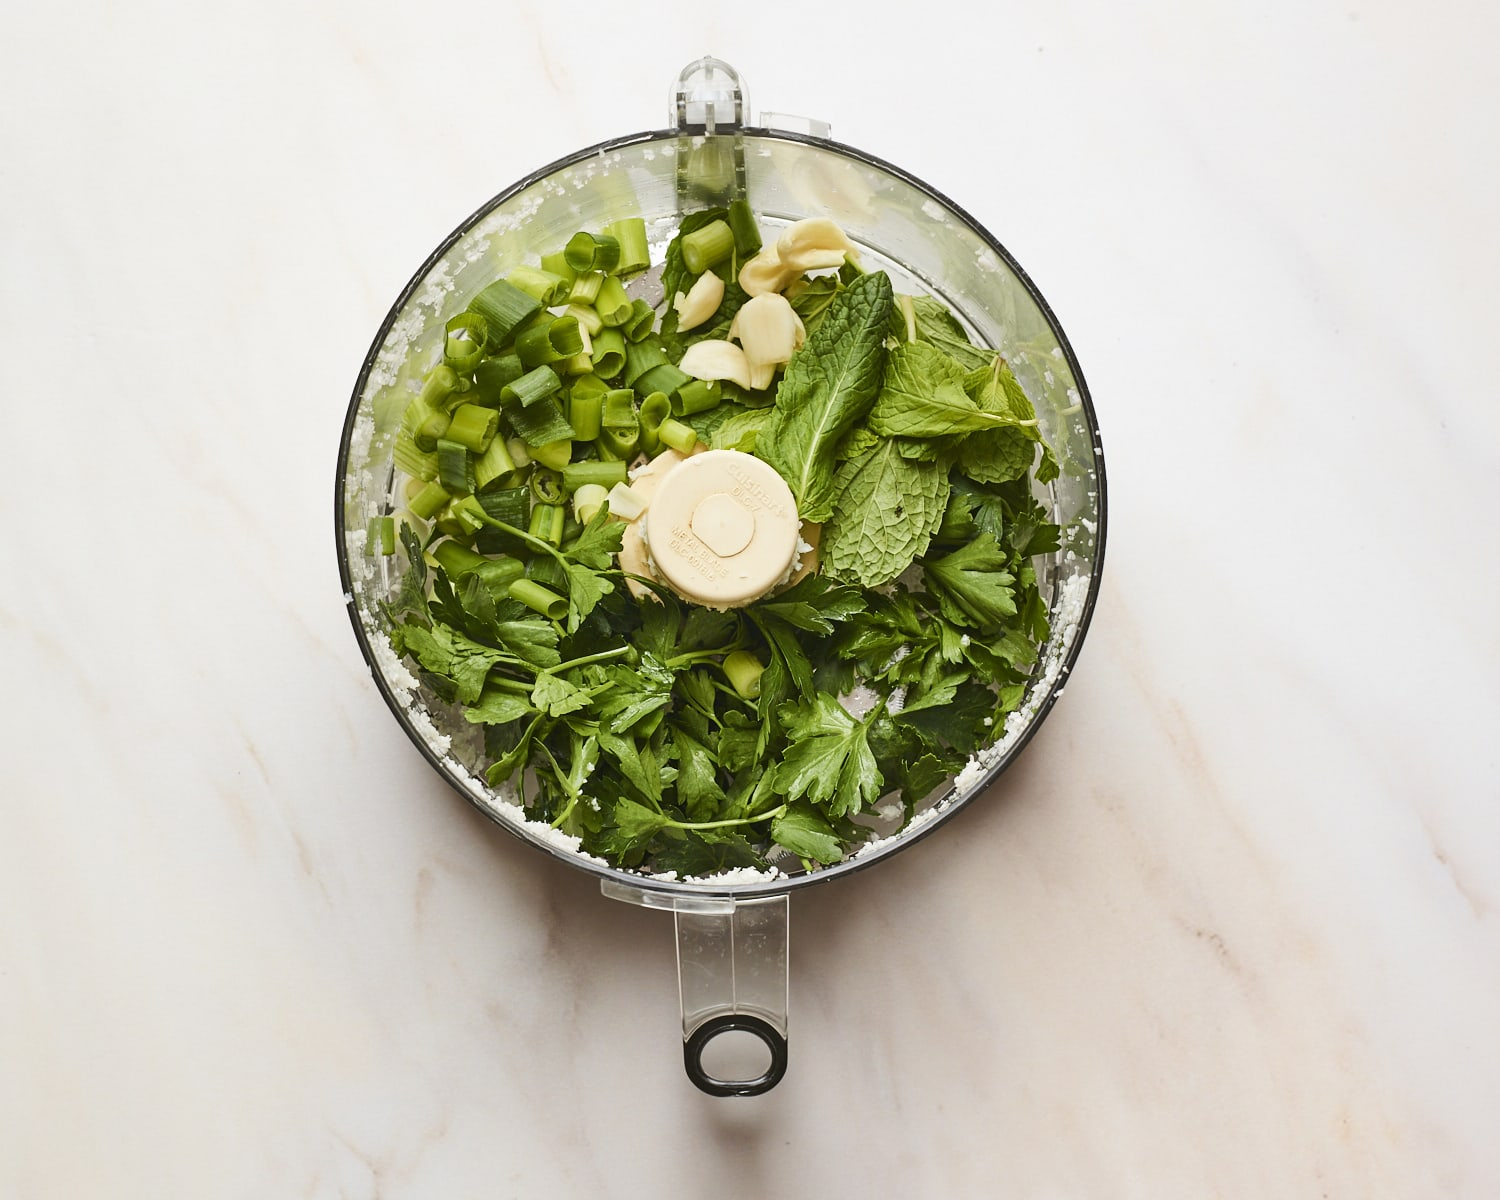 Herbs, green onion and garlic in a food processor.